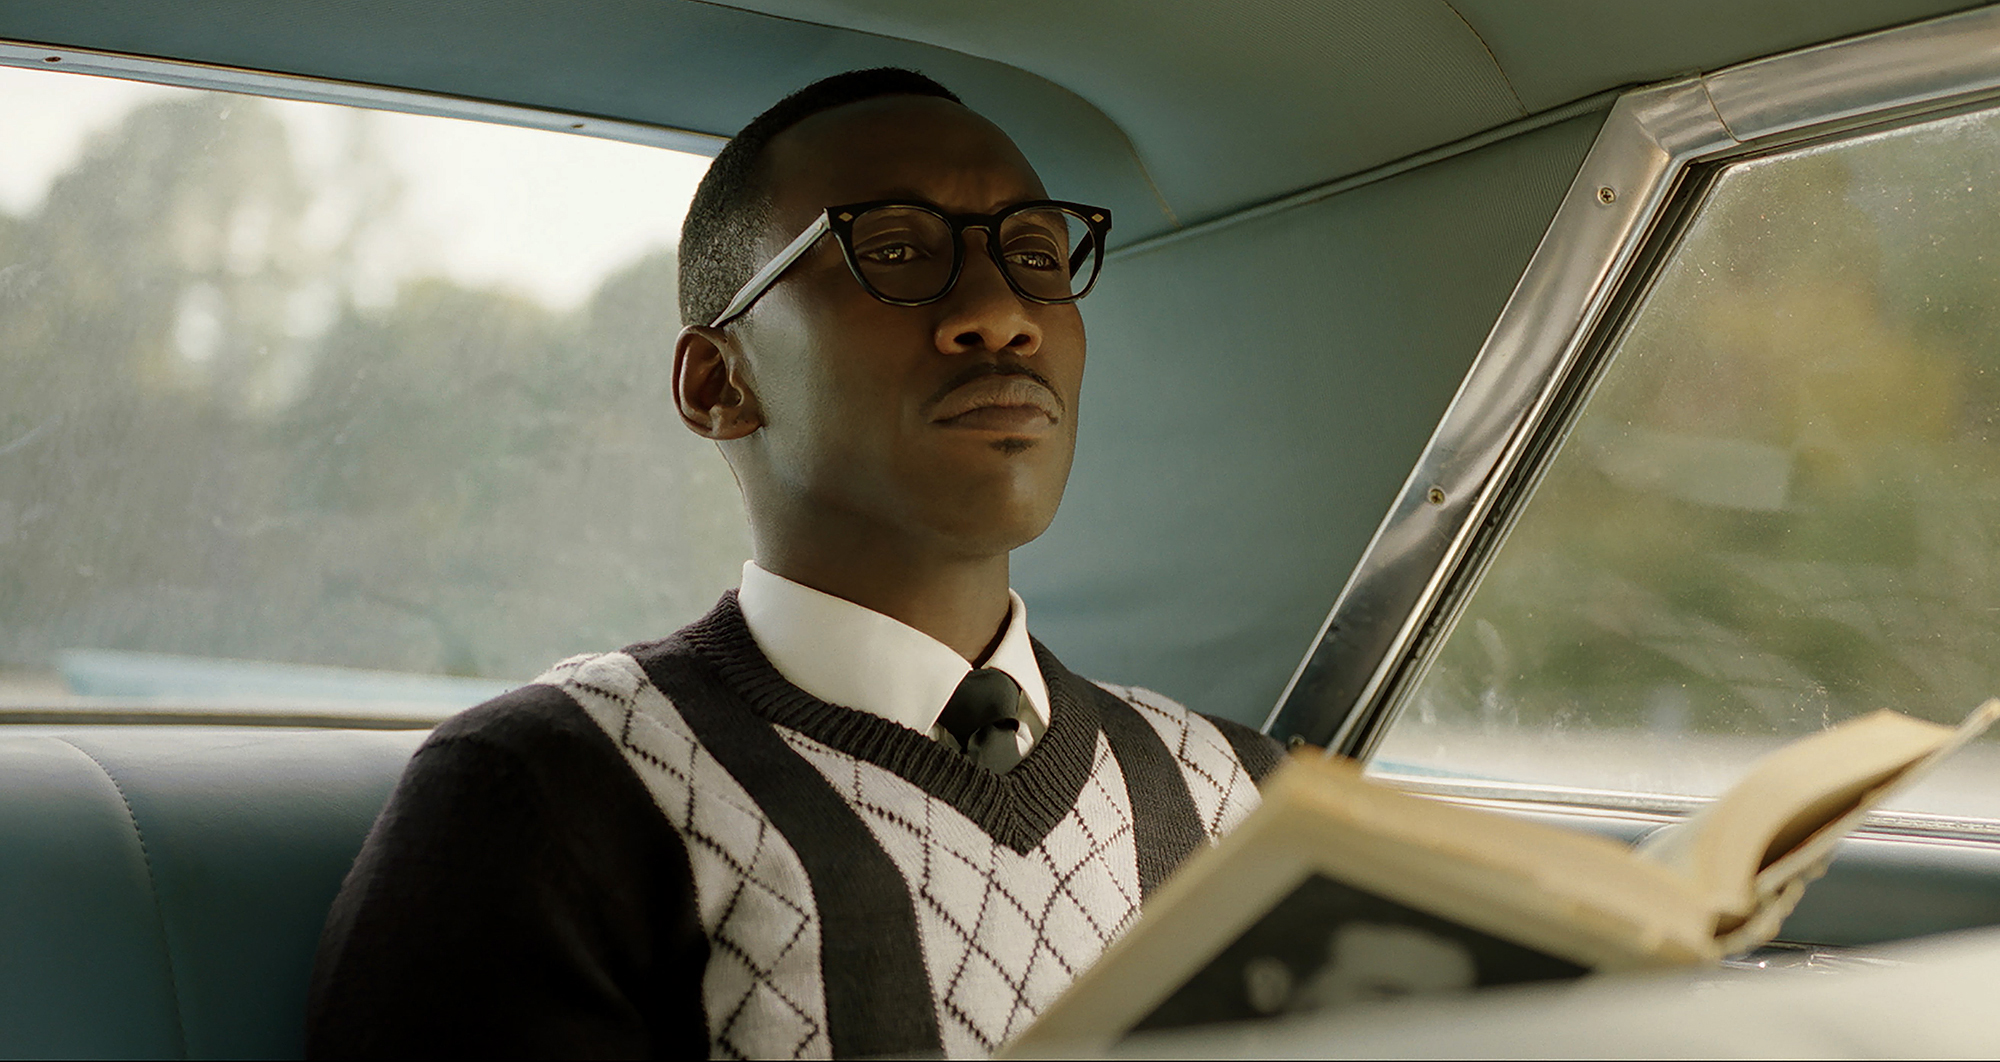 SAGS-Best-Actor-in-a-Supporting-Role-in-any-Motion-Picture-Mahershala-Ali - Mahershala Ali, Green Book Timothée Chalamet, Beautiful Boy Adam Driver, BlacKkKlansman Sam Elliott, A Star Is Born Richard E. Grant, Can You Ever Forgive Me?